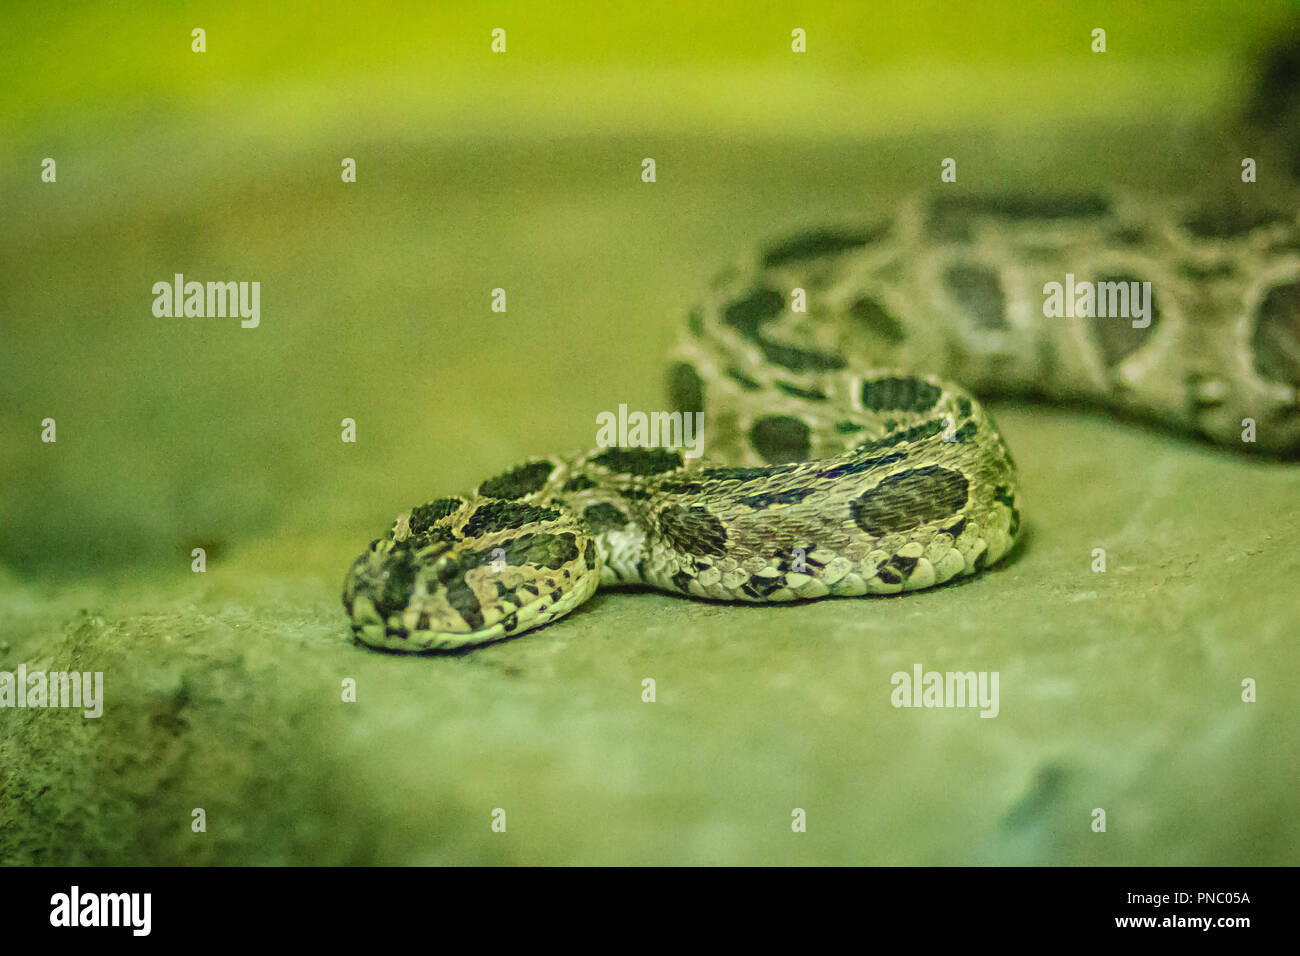 Siamese russell's viper (daboia russelii siamensis) in the snake farm. Daboia siamensis is a venomous viper species that is endemic to parts of Southe - Stock Image